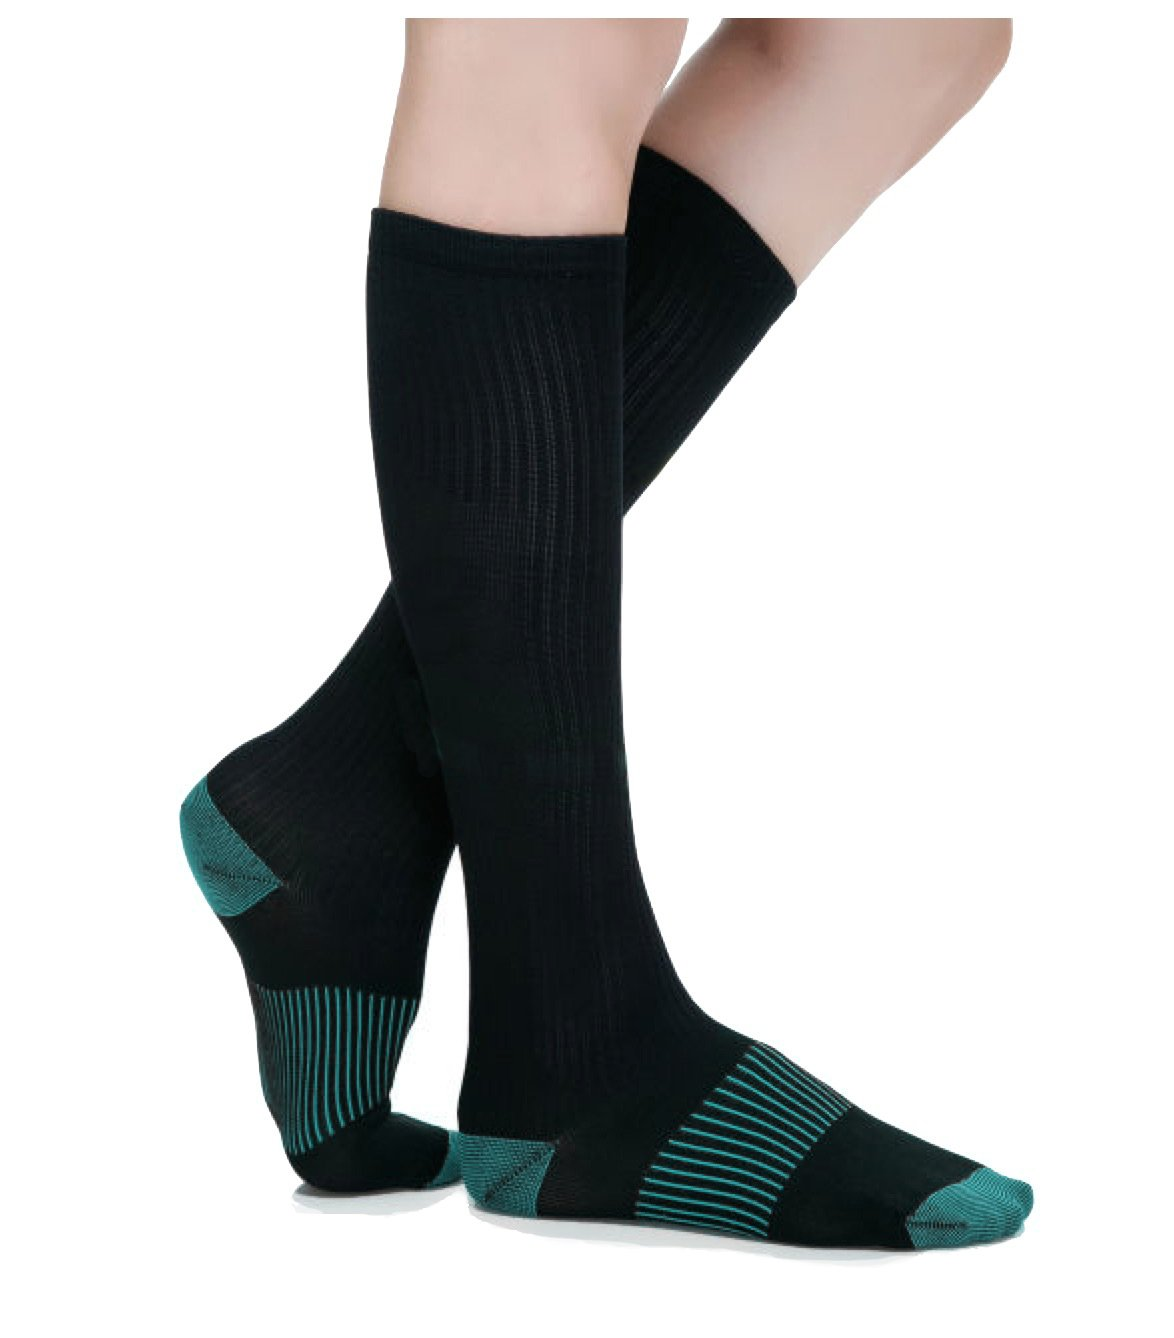 Primary Health Sports Best Compression Copper Socks - Great for Men, Women, Travelers, Nurses, Pregnancy - Protect & Support your Calves, Ankles, and Feet. Graduated Compression. 15-20mmhg